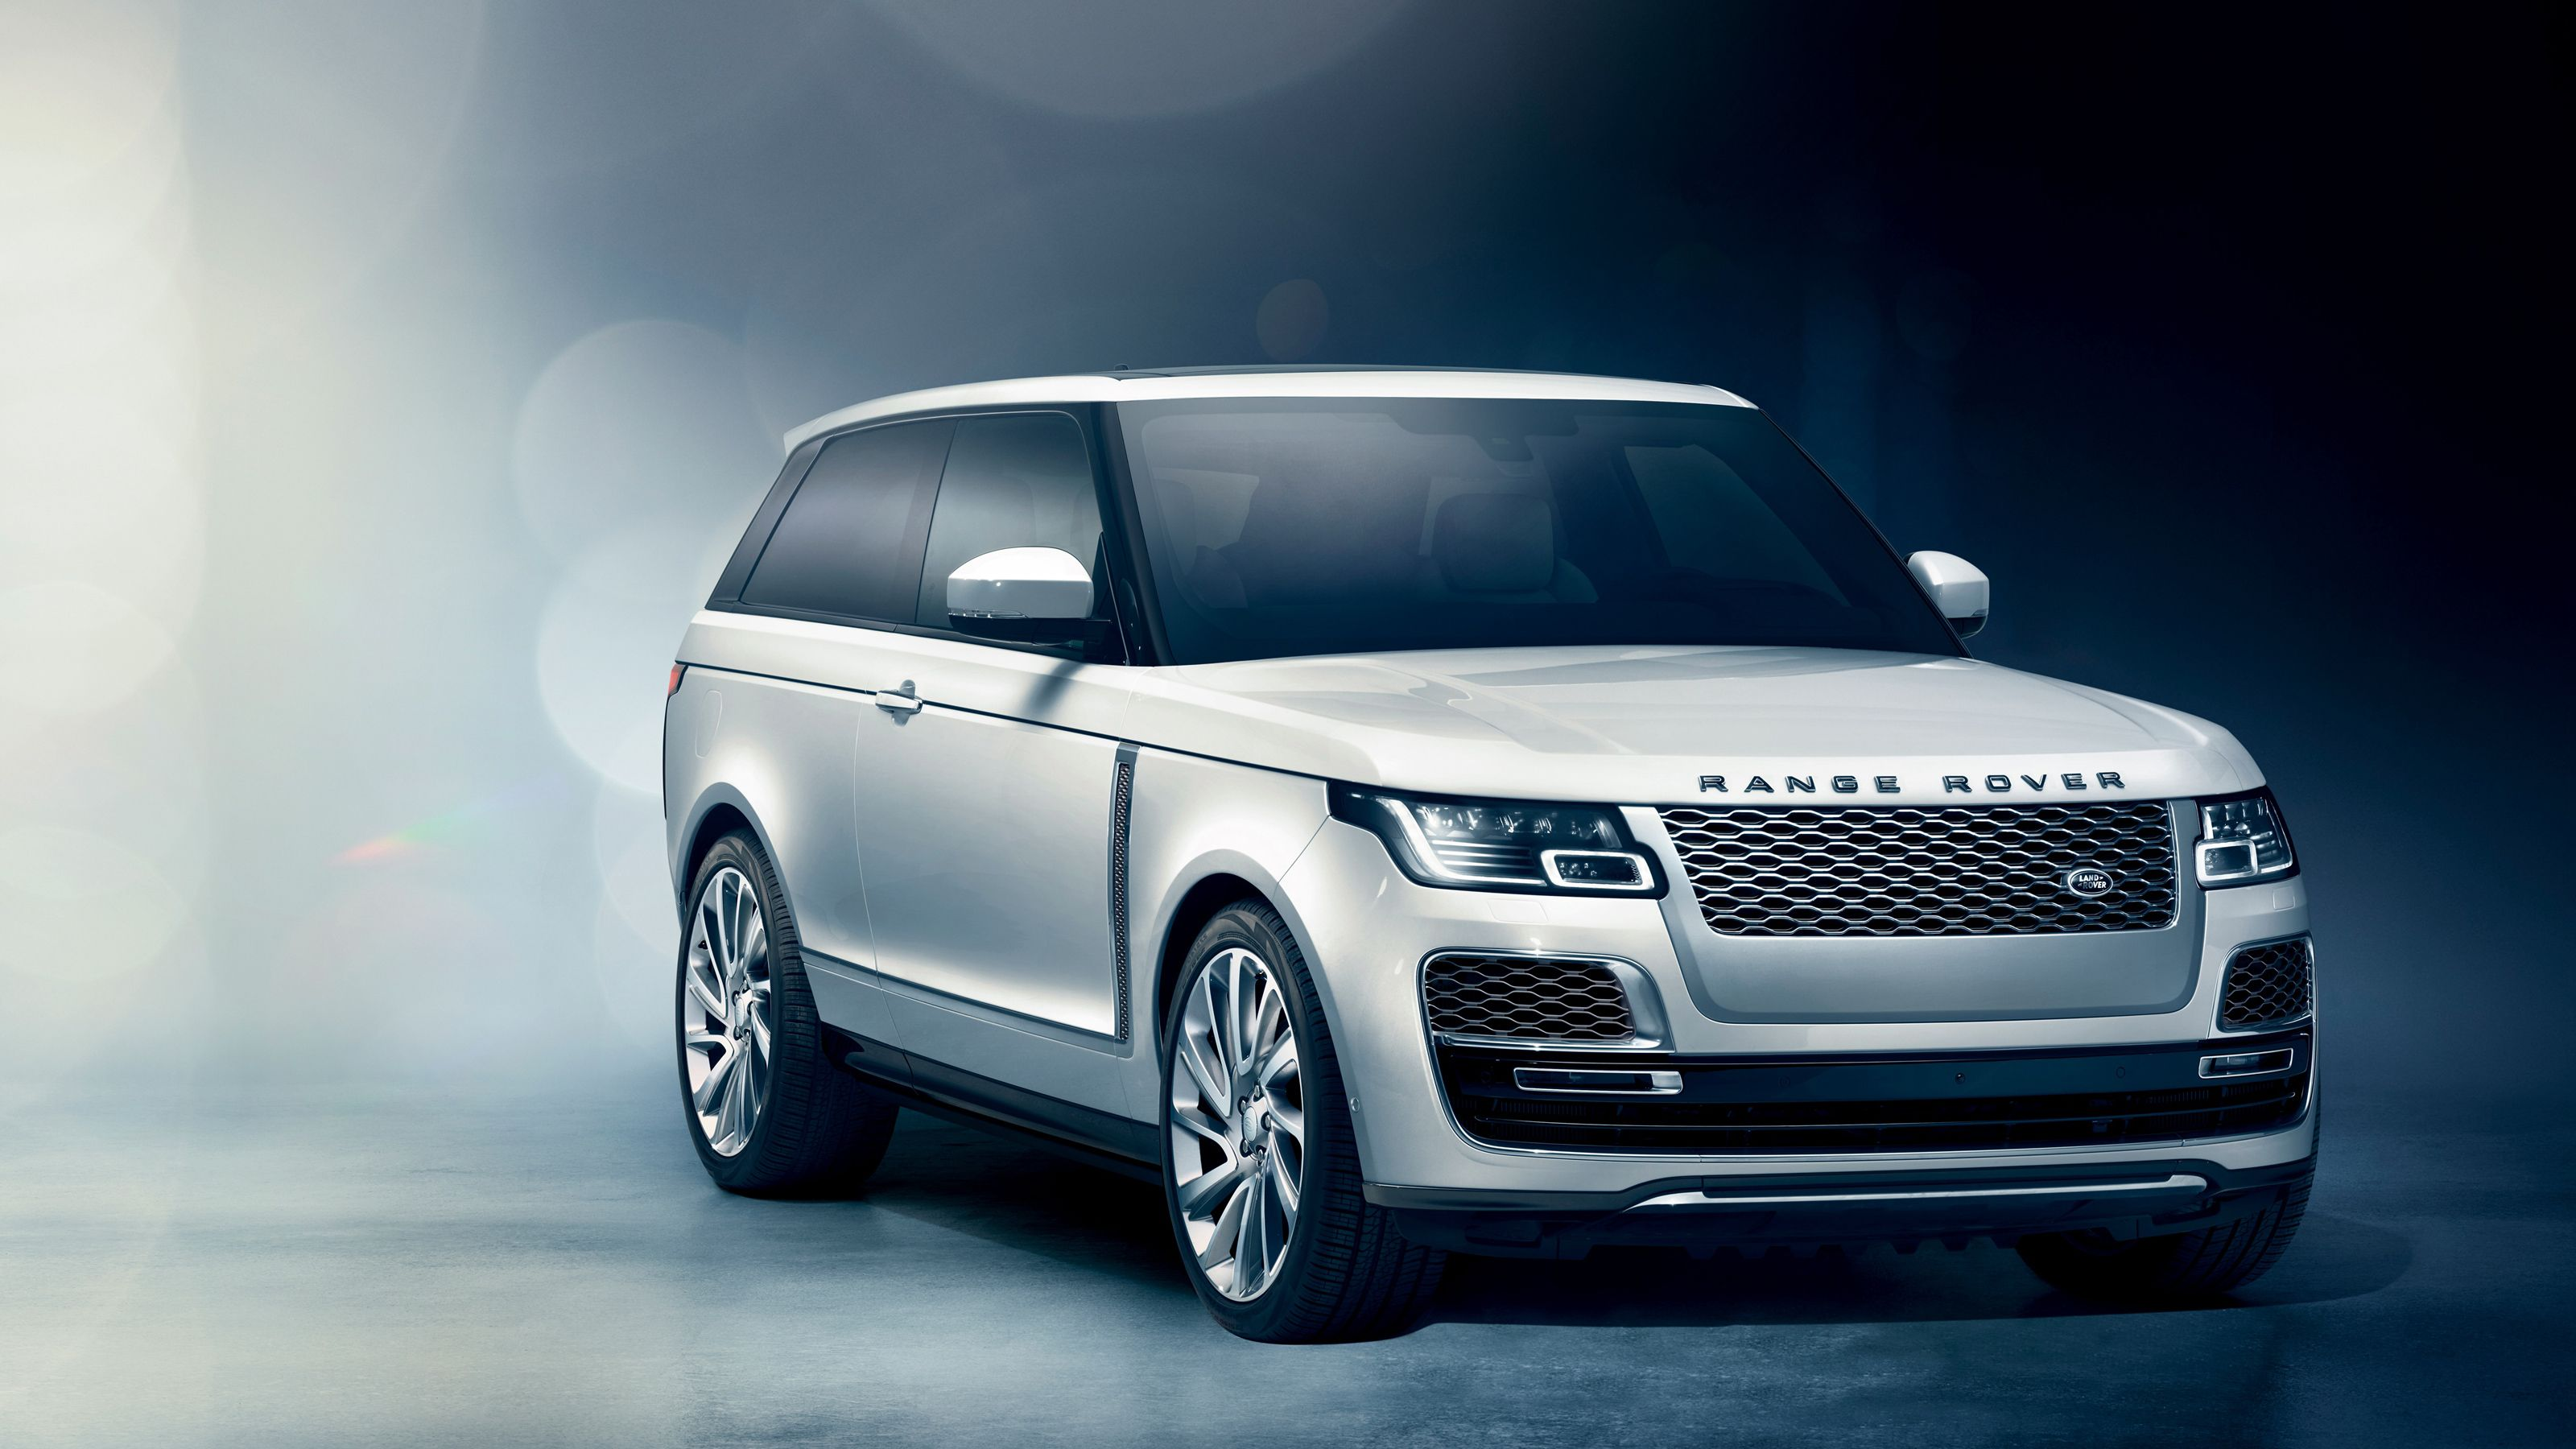 Range Rover Wallpapers Top Free Range Rover Backgrounds